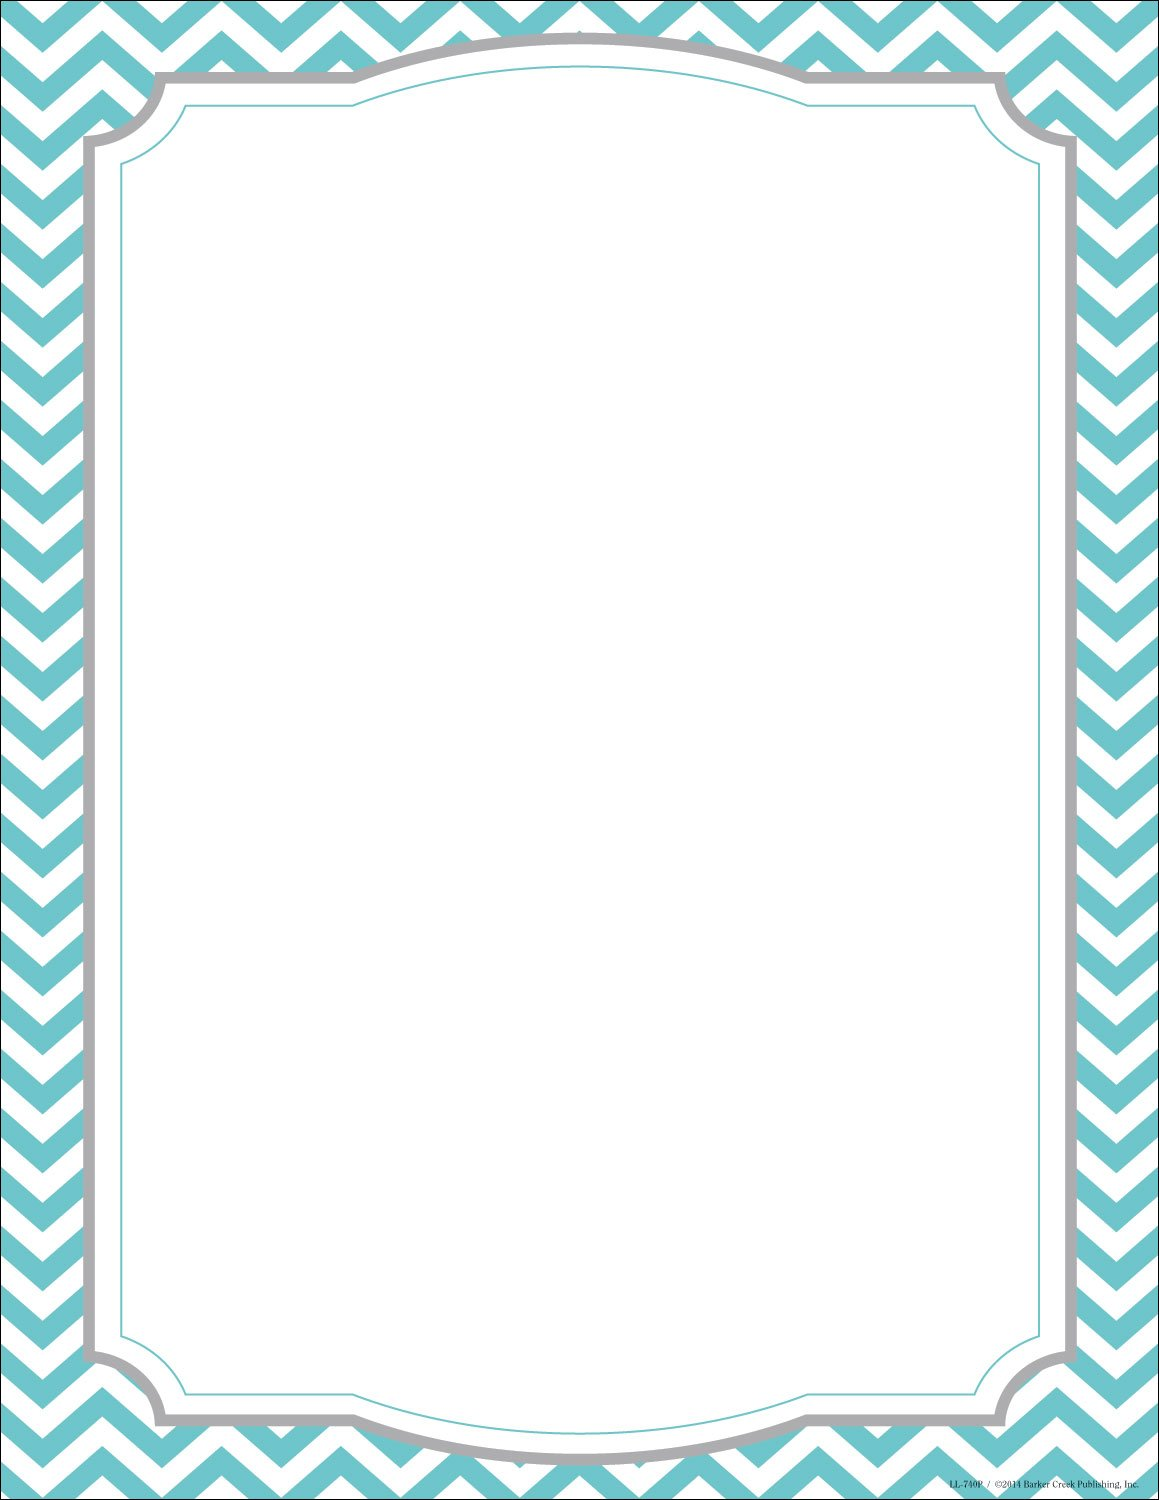 Barker Creek Turquoise Chevron Computer Paper, 8-1/2' x 11', Pack of 50